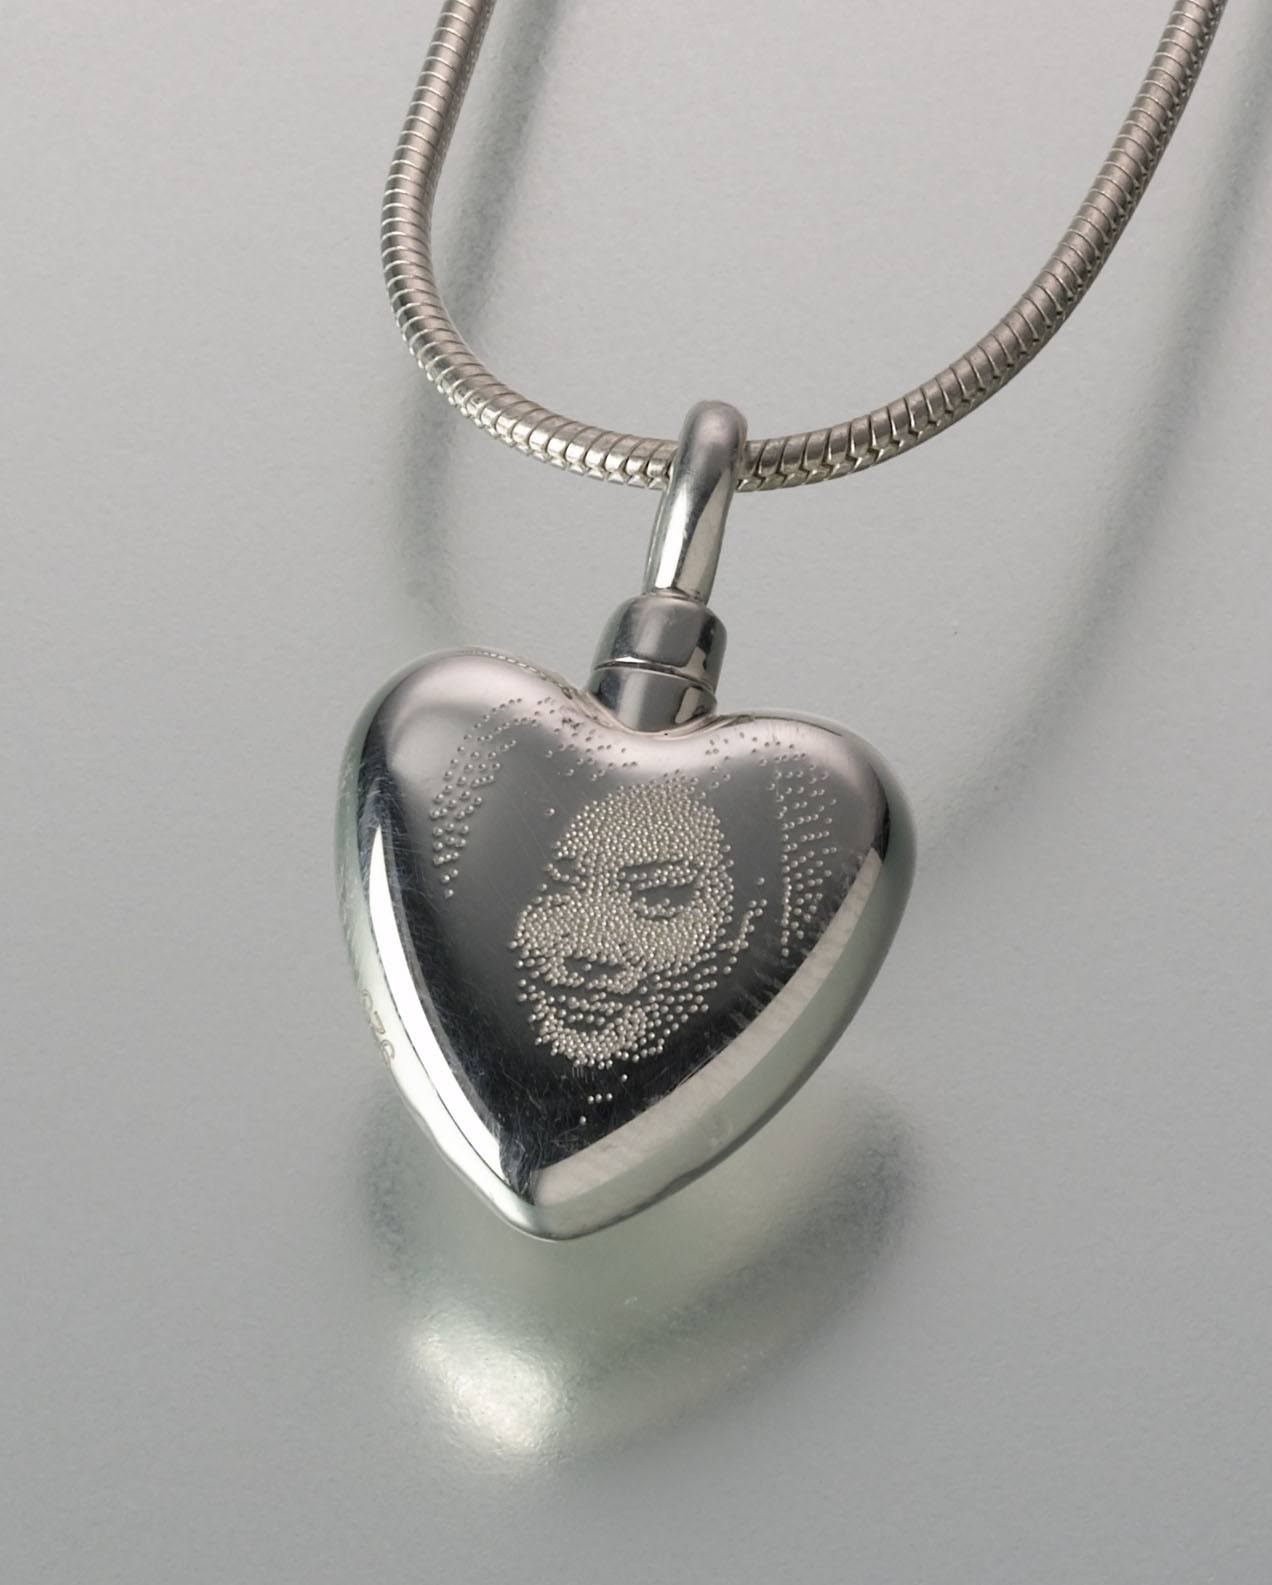 heart products catalog jewelry pendant bracelet petite funeral ashes cremation